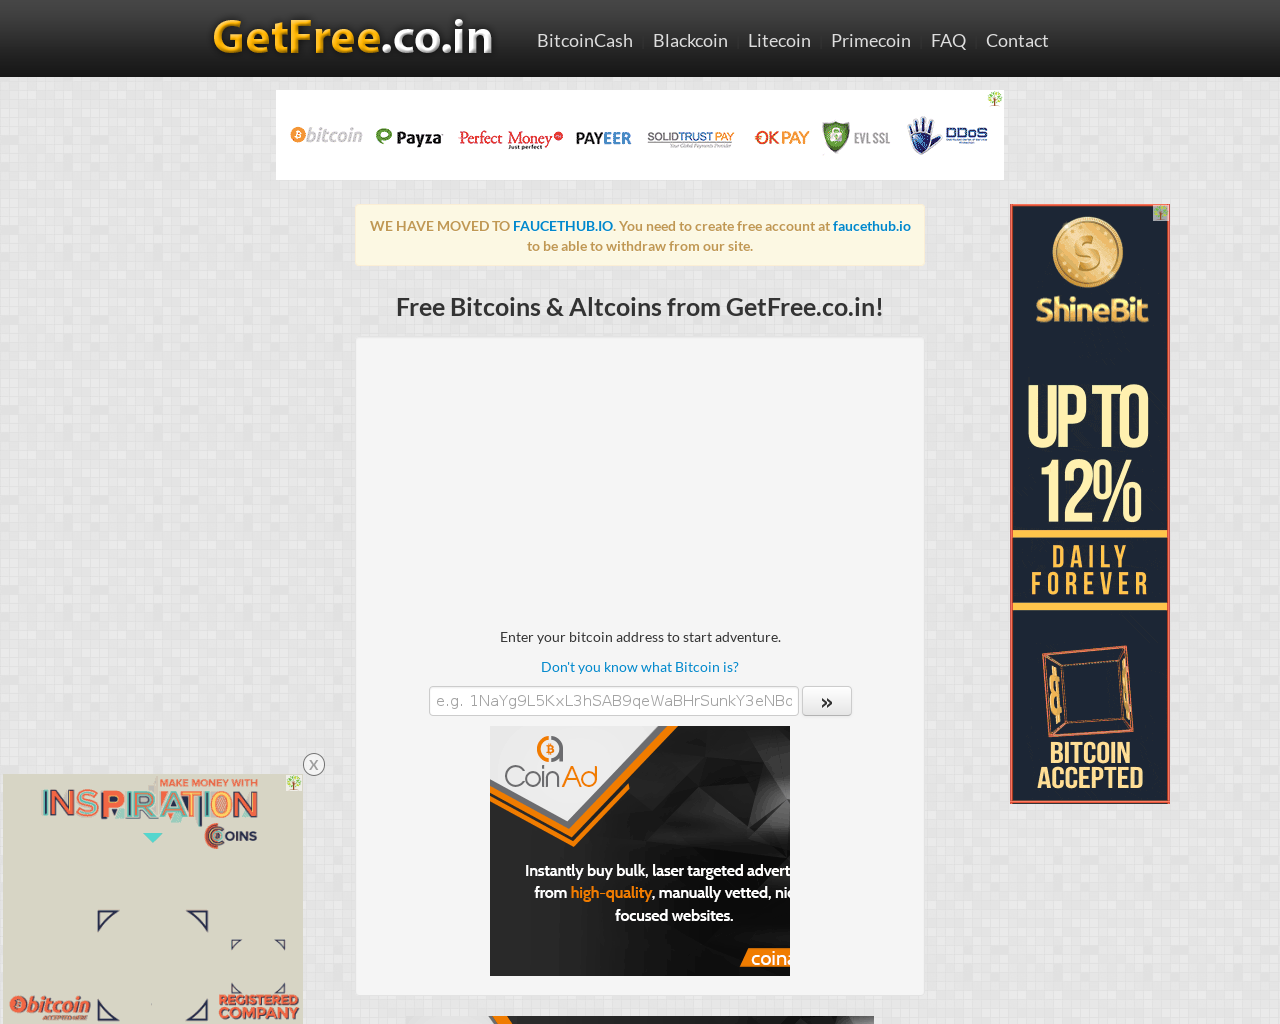 GetFree.co.in